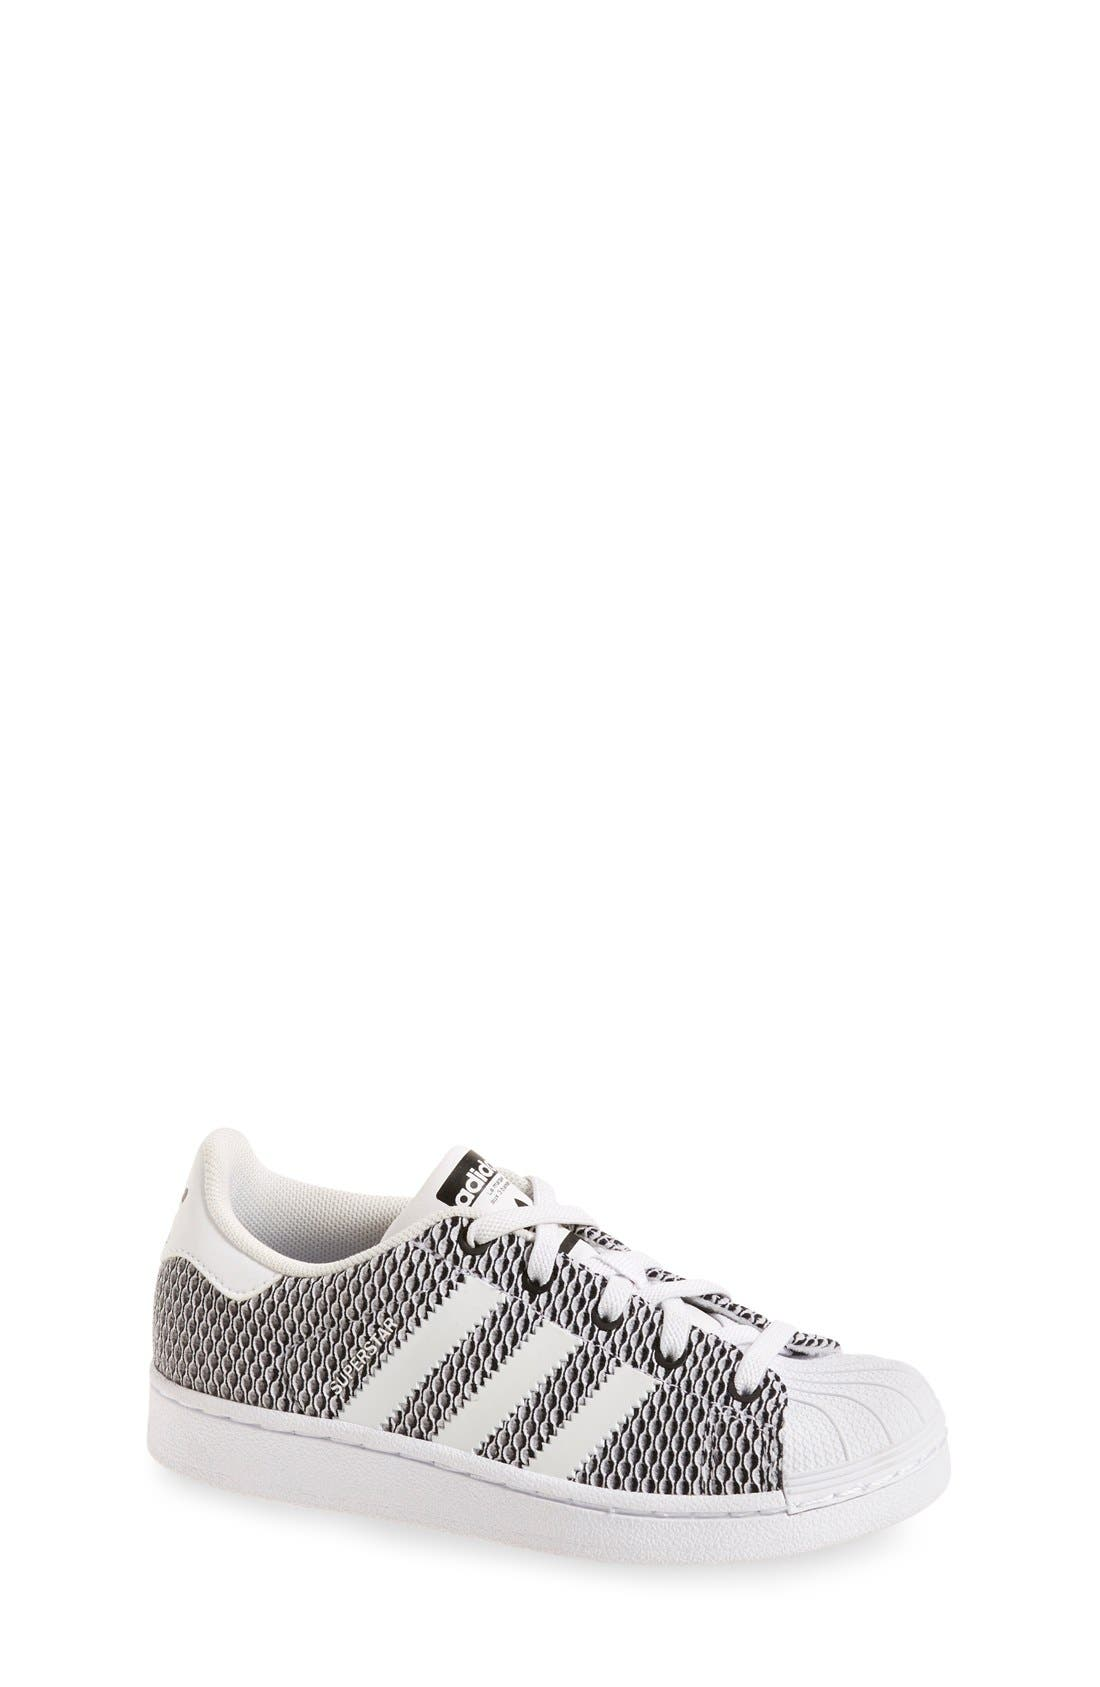 'Superstar - Color Shift' Sneaker,                         Main,                         color, Core Black